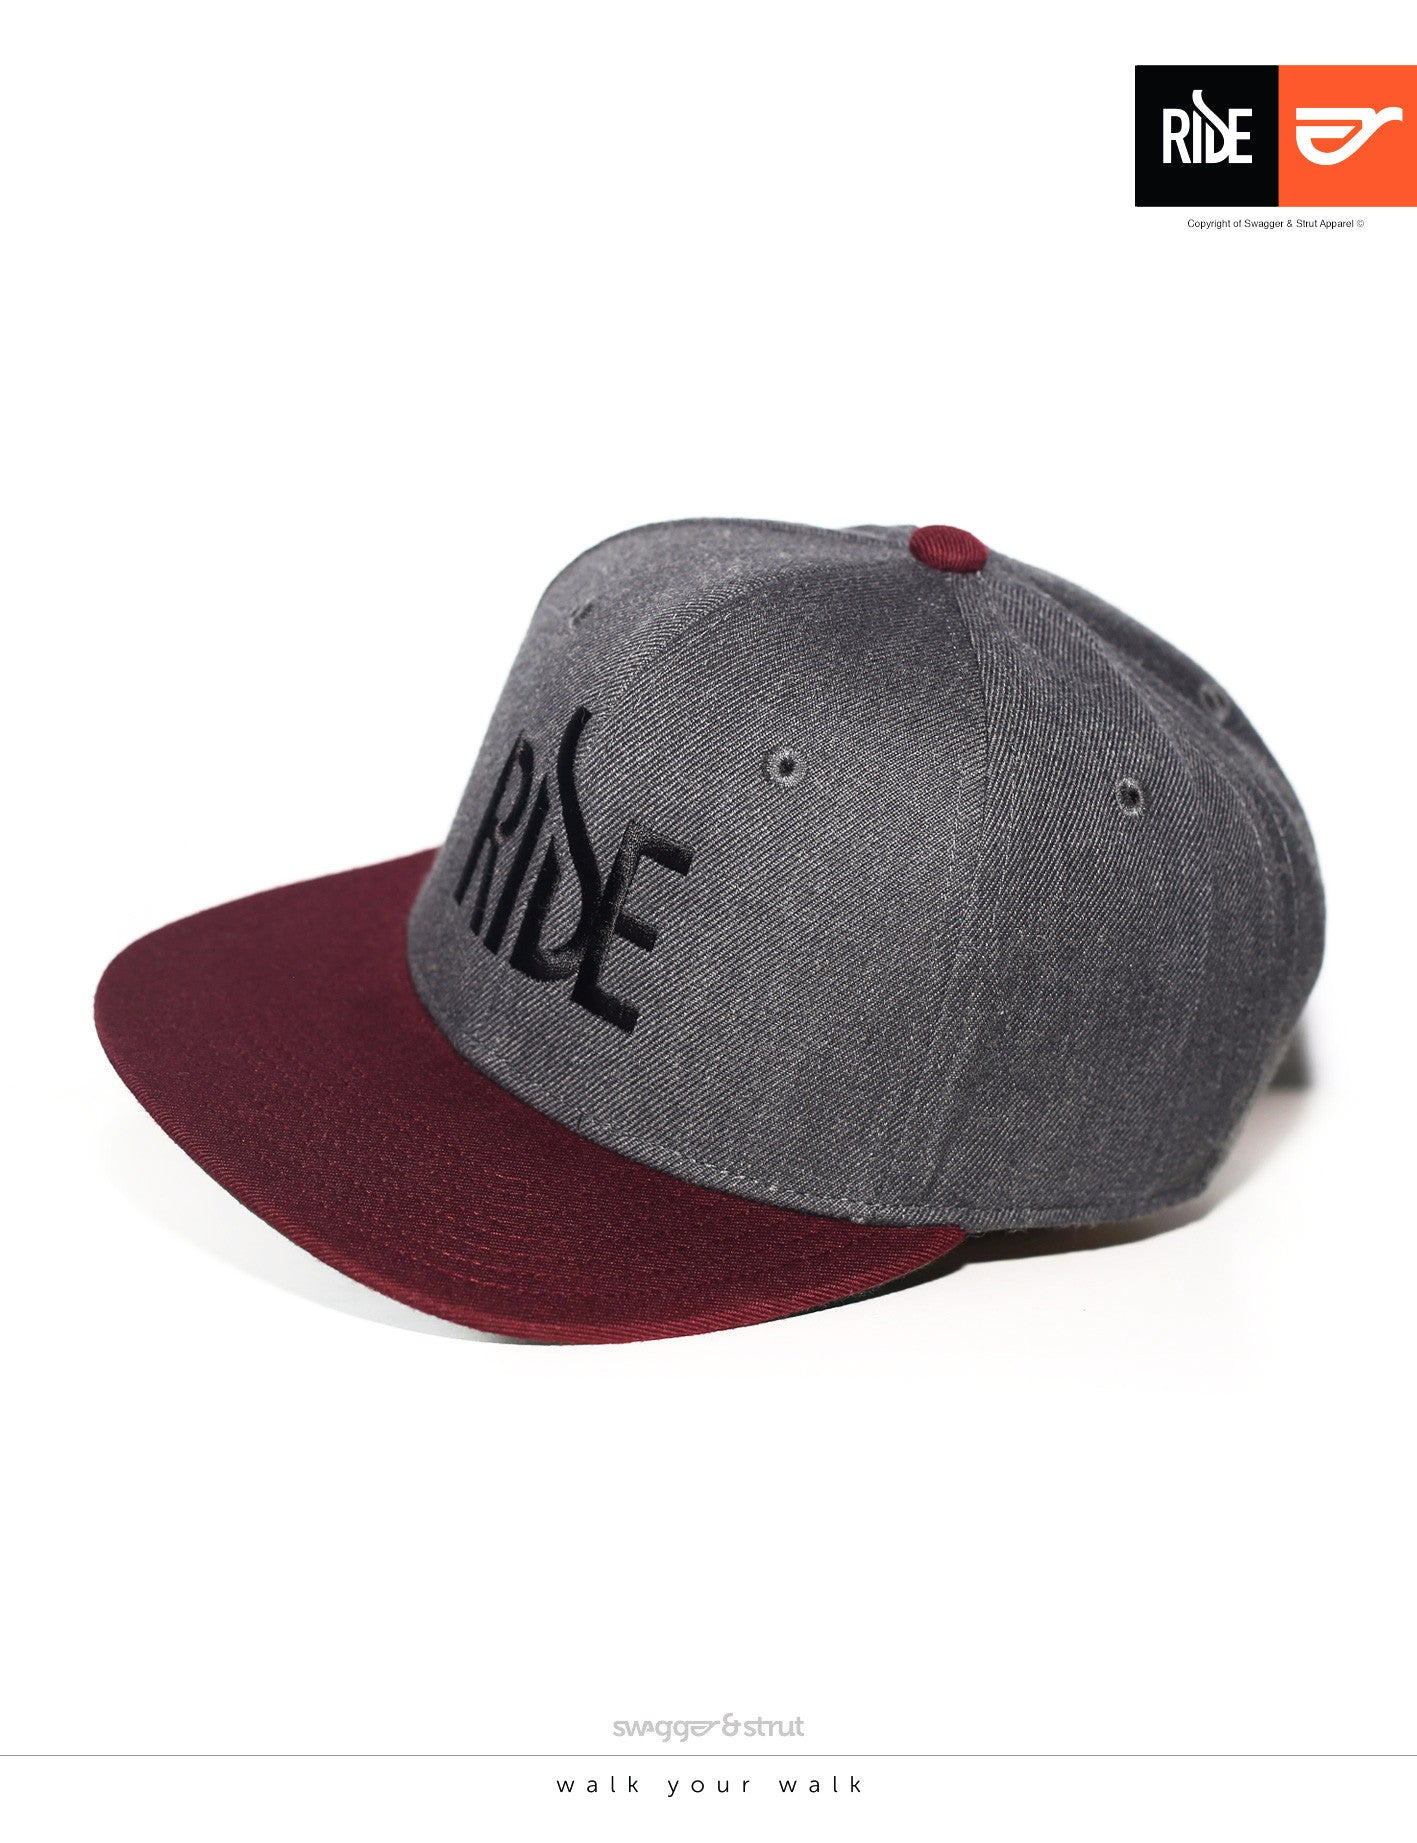 RIDE Logo Snapback - Dark Grey & Burgundy